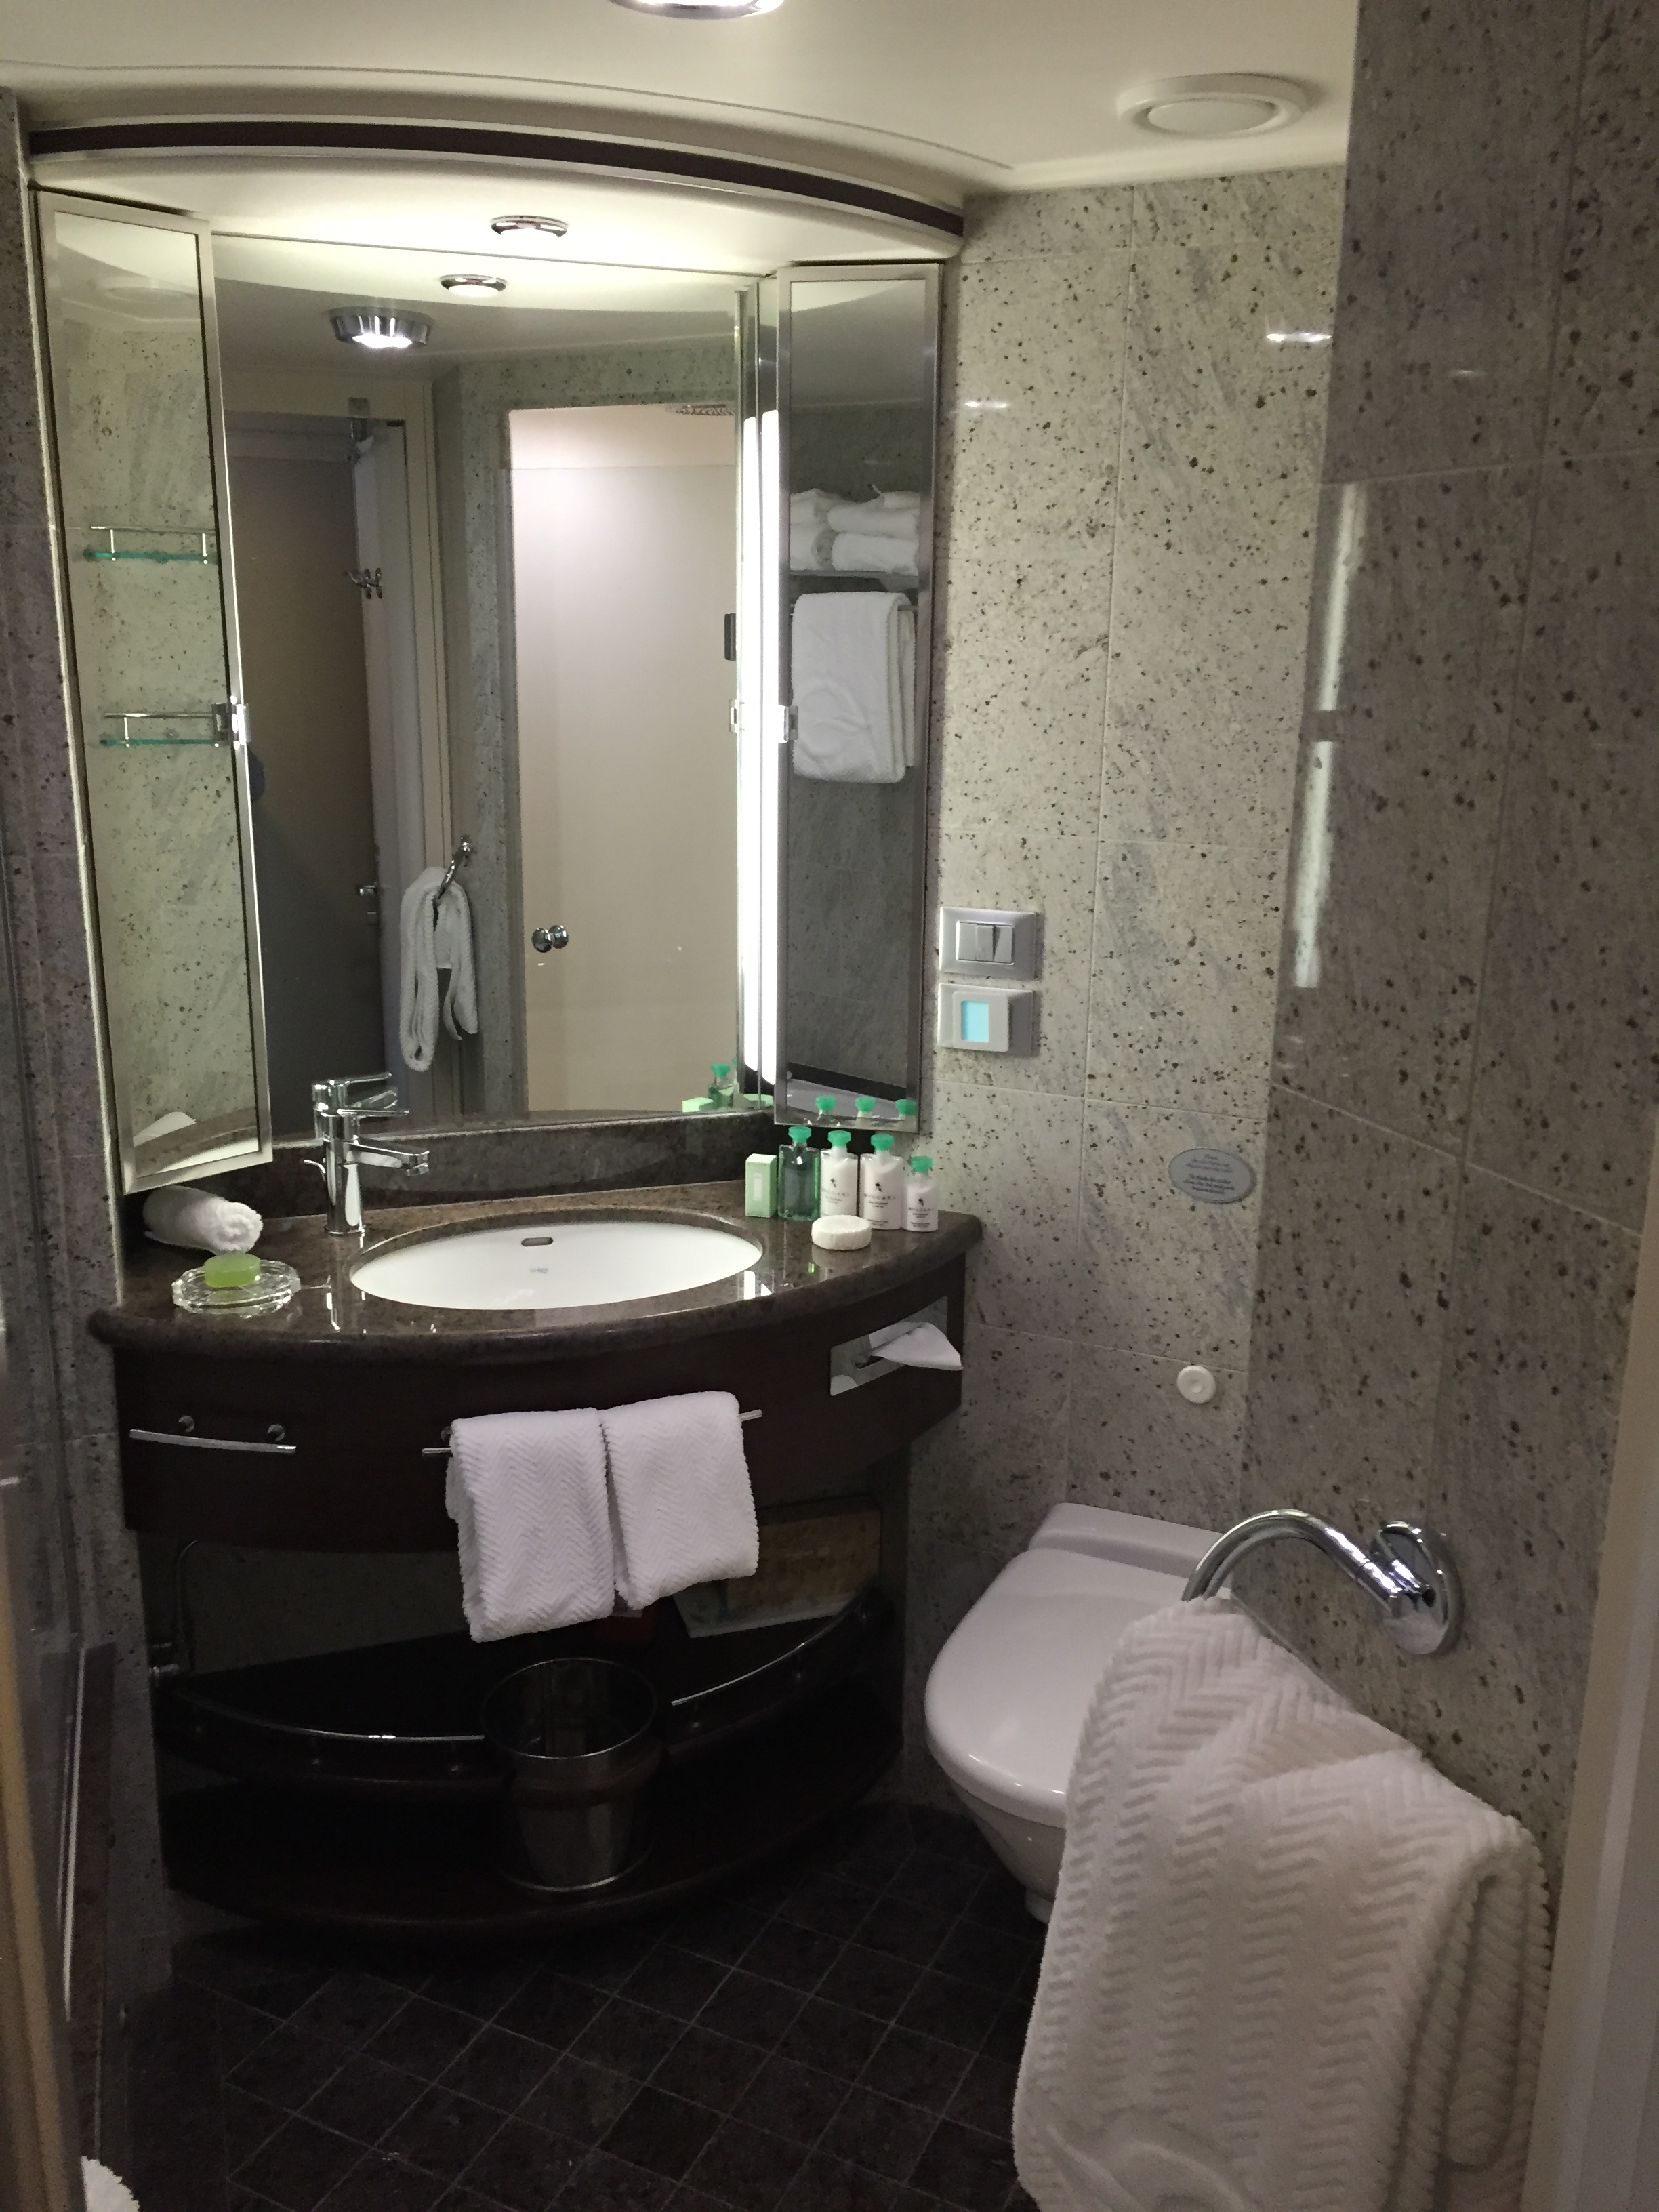 1st time oceania good ports but no sea days riviera for Riviera bathrooms